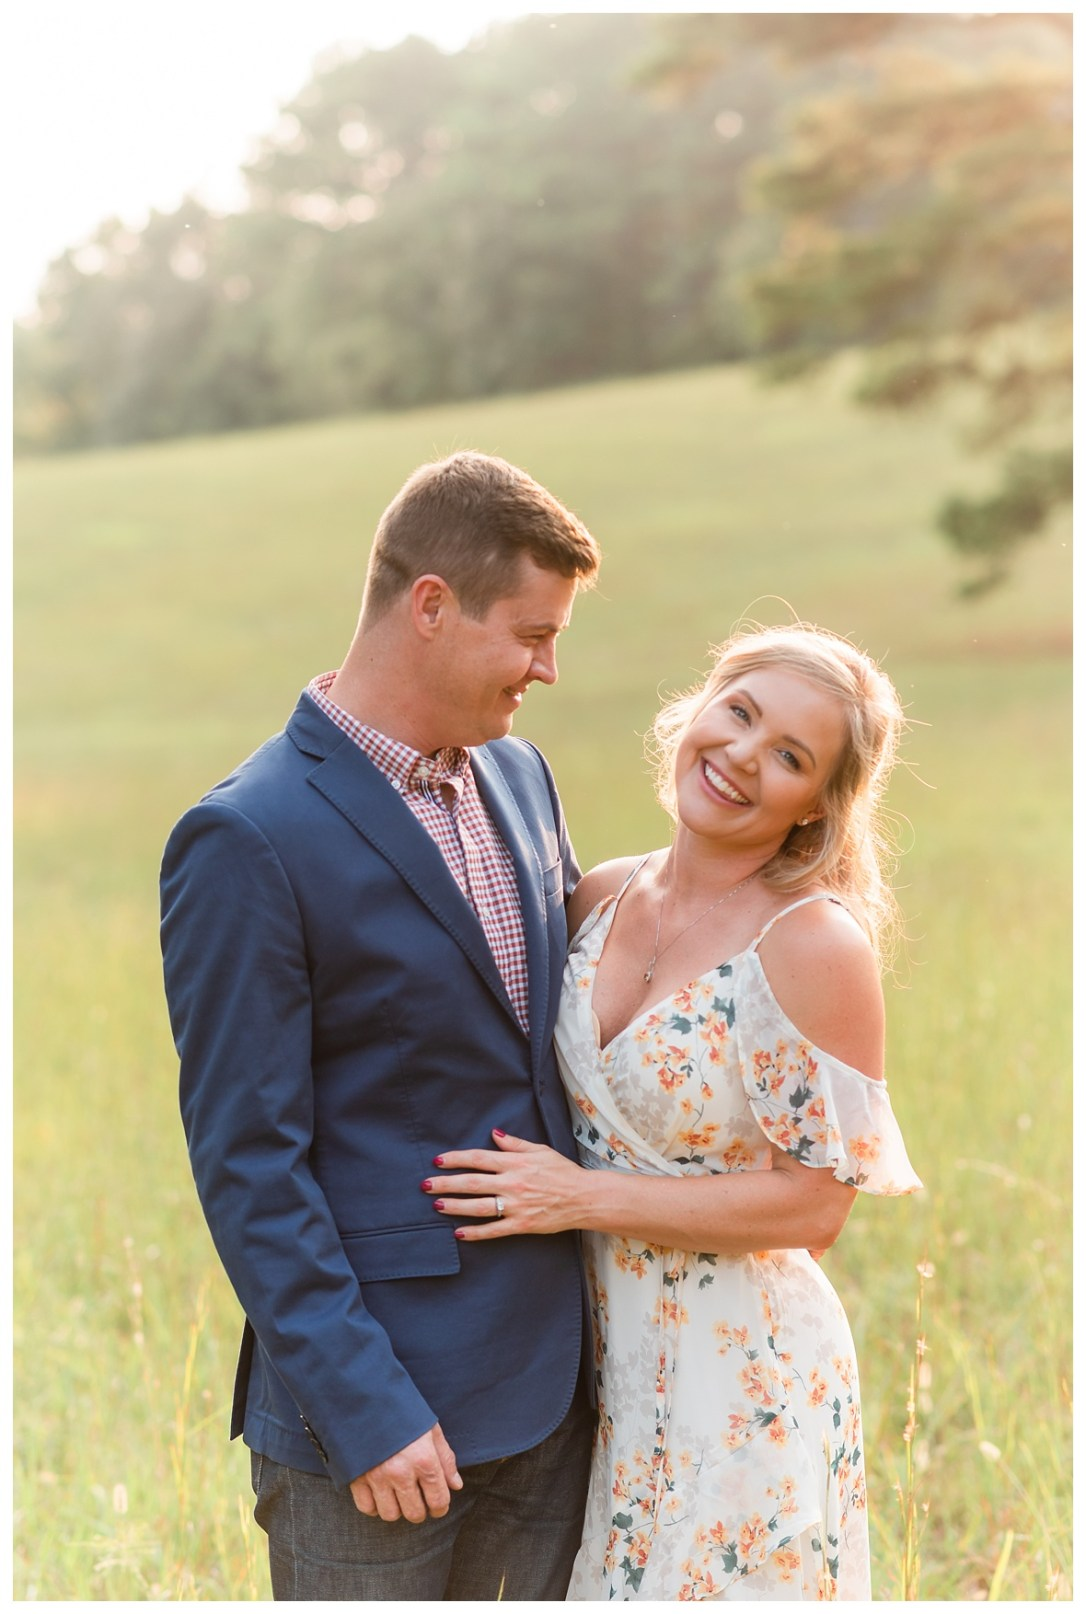 Chickamauga battlefield engagement photos